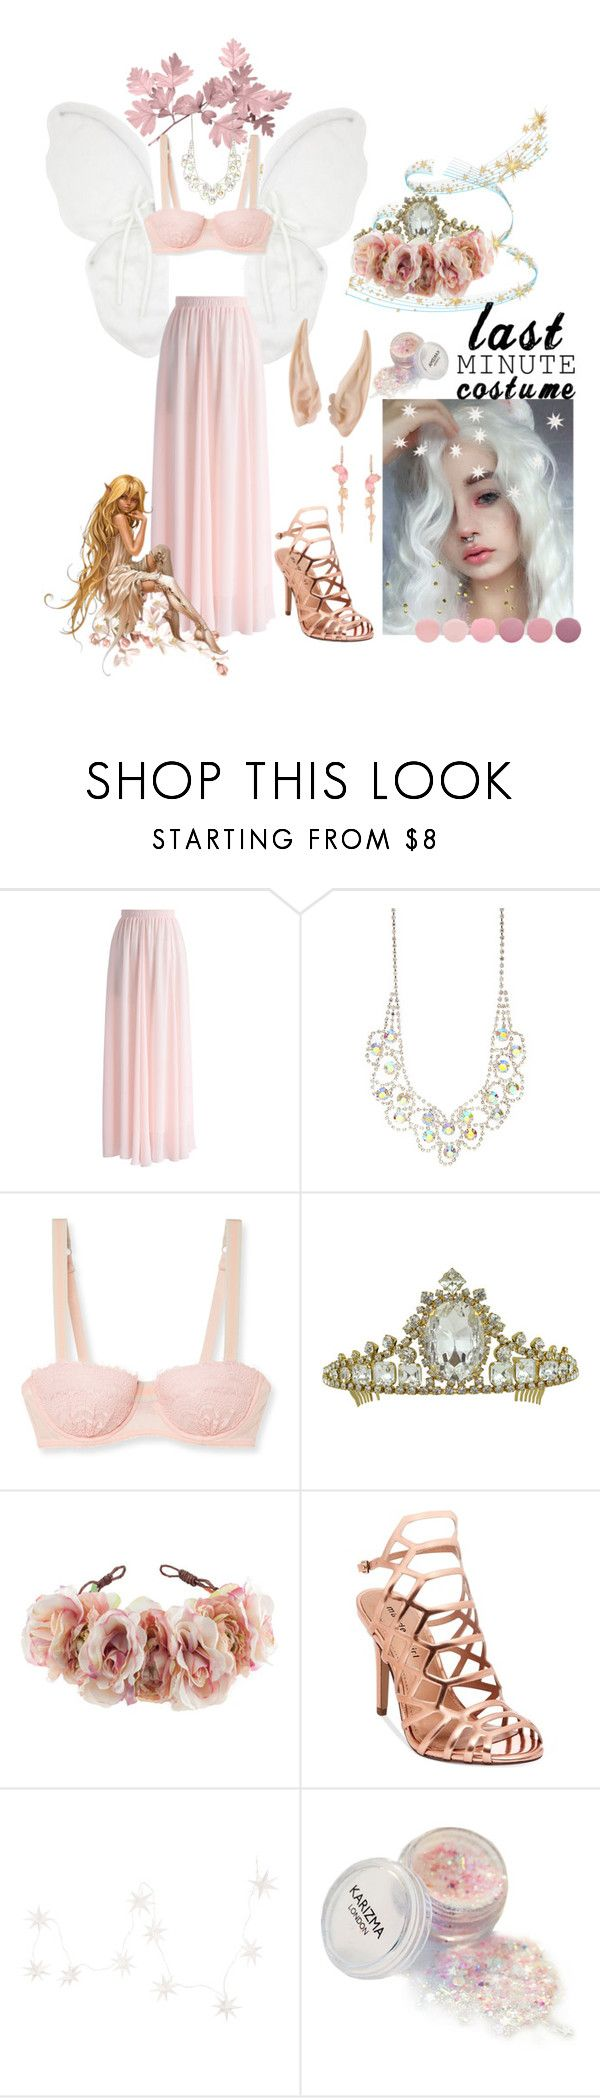 """Fairy"" by killingstalking ❤ liked on Polyvore featuring Chicwish, Mimi Holliday by Damaris, Rock 'N Rose, Madden Girl, NKUKU and Deborah Lippmann"